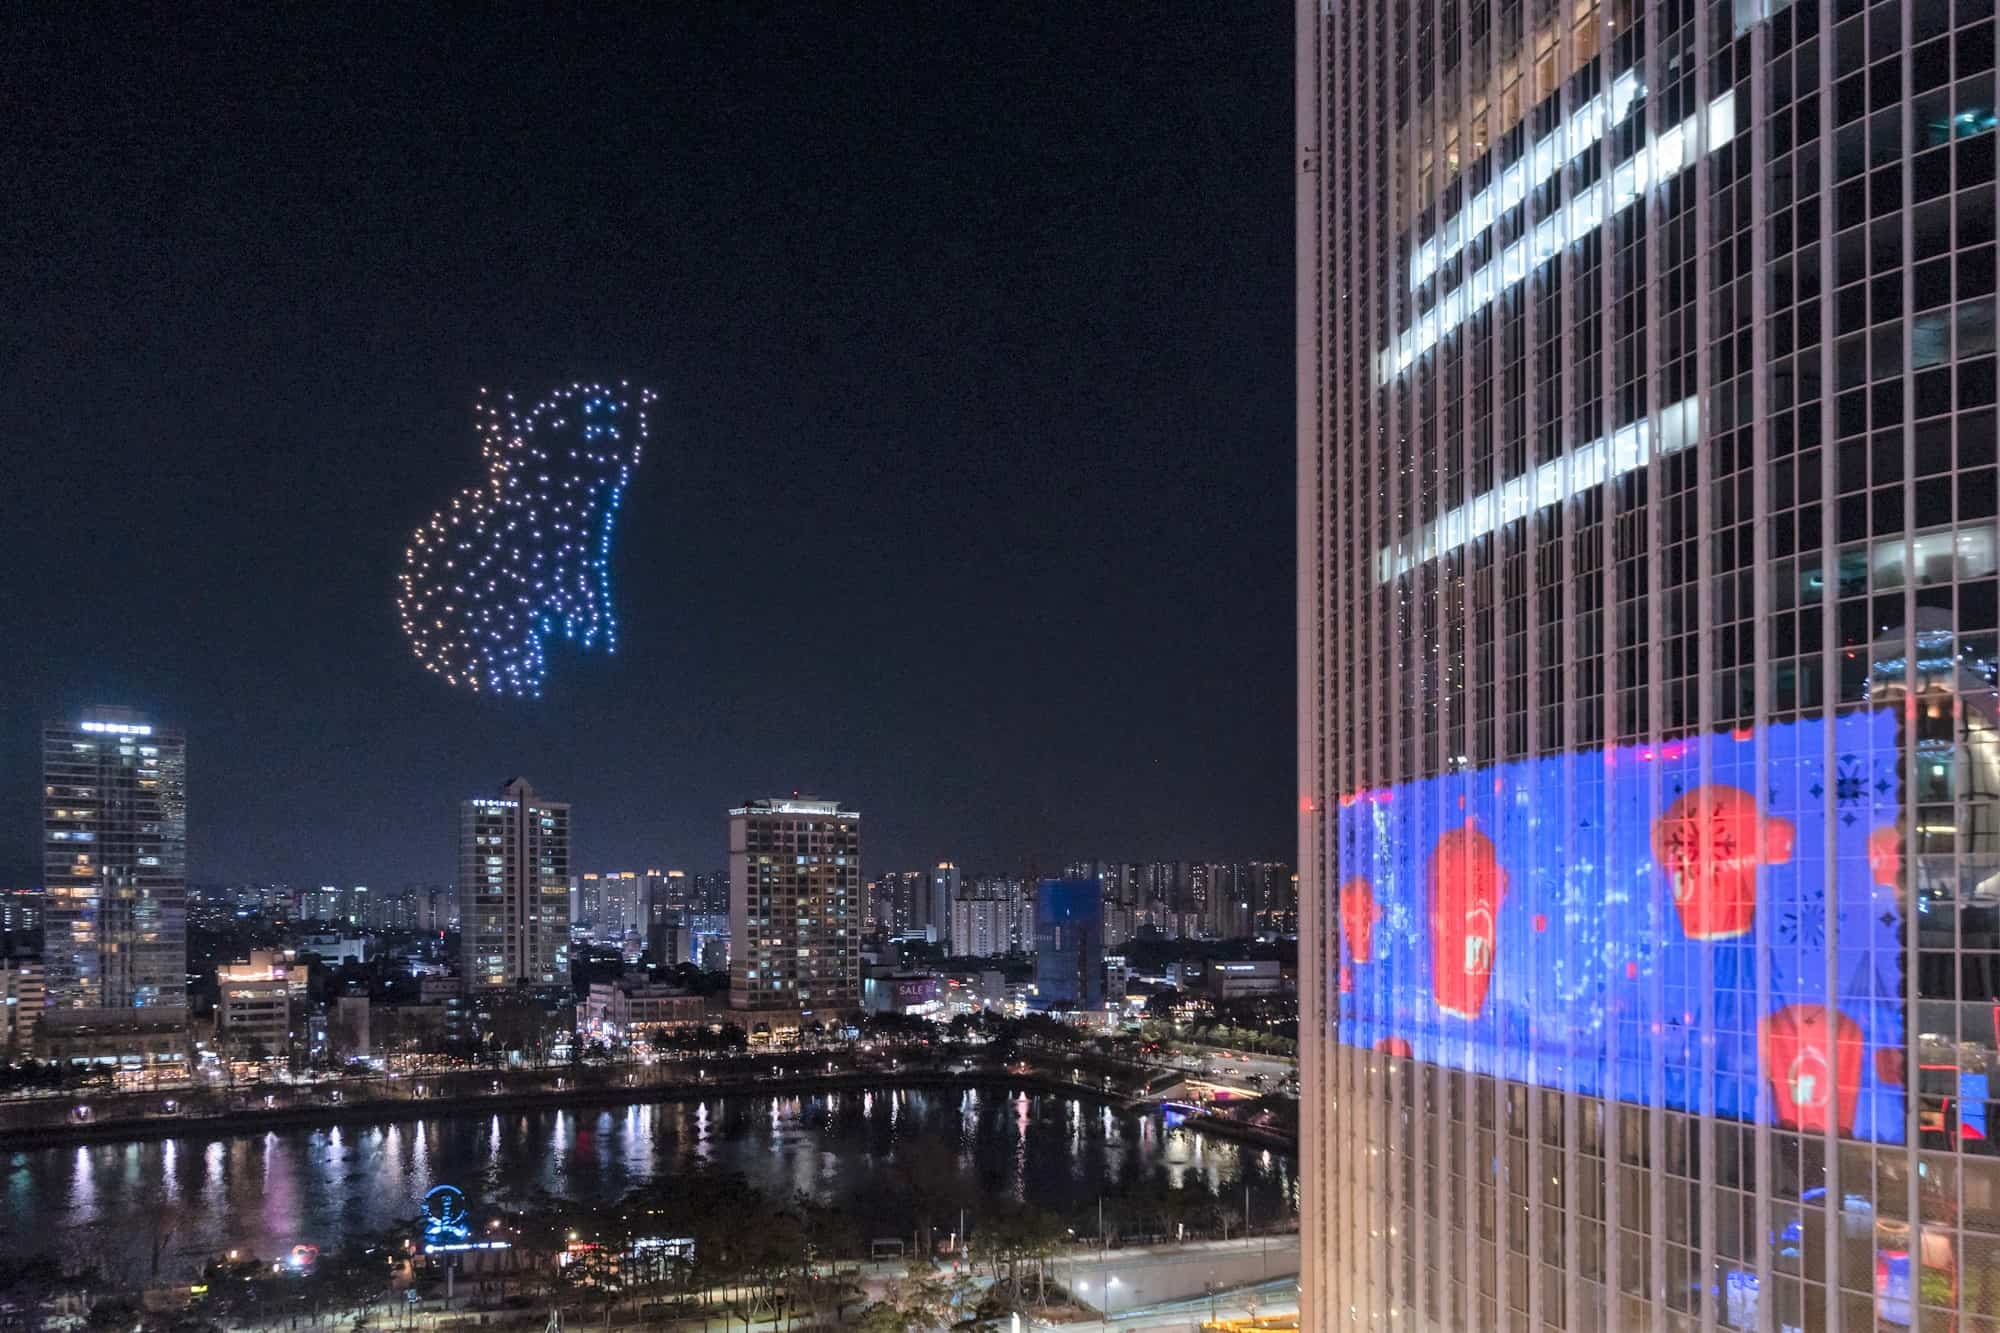 Double celebration as Lotte Duty Free and Lancôme light up the night sky in Seoul